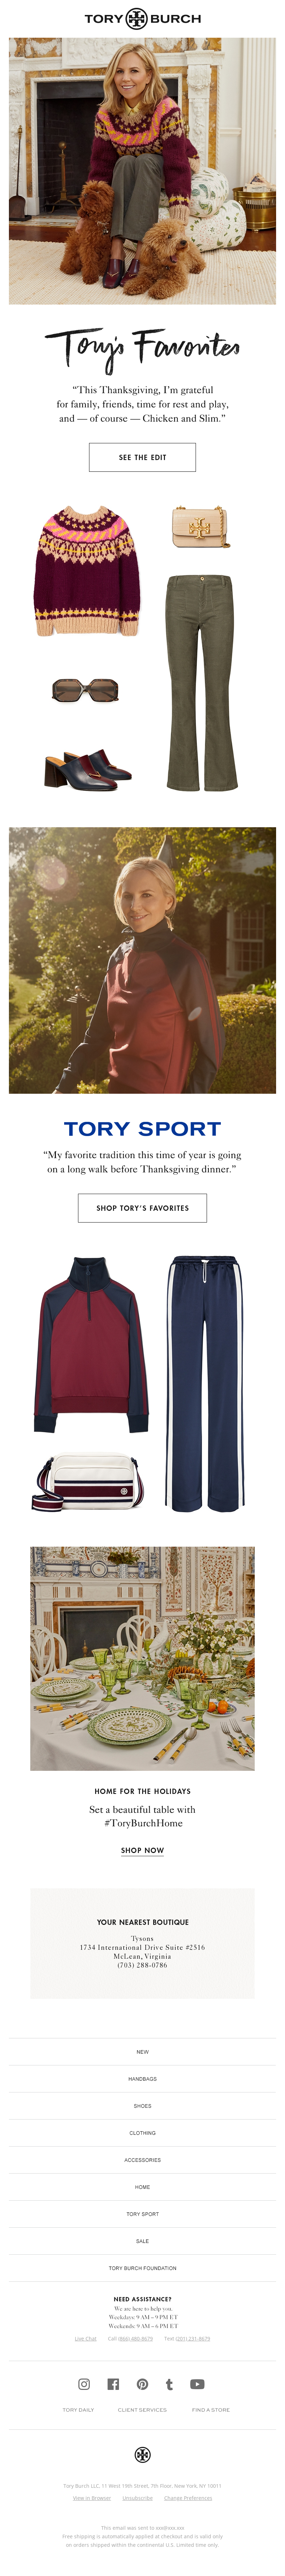 Thanksgiving email from Tory Burch